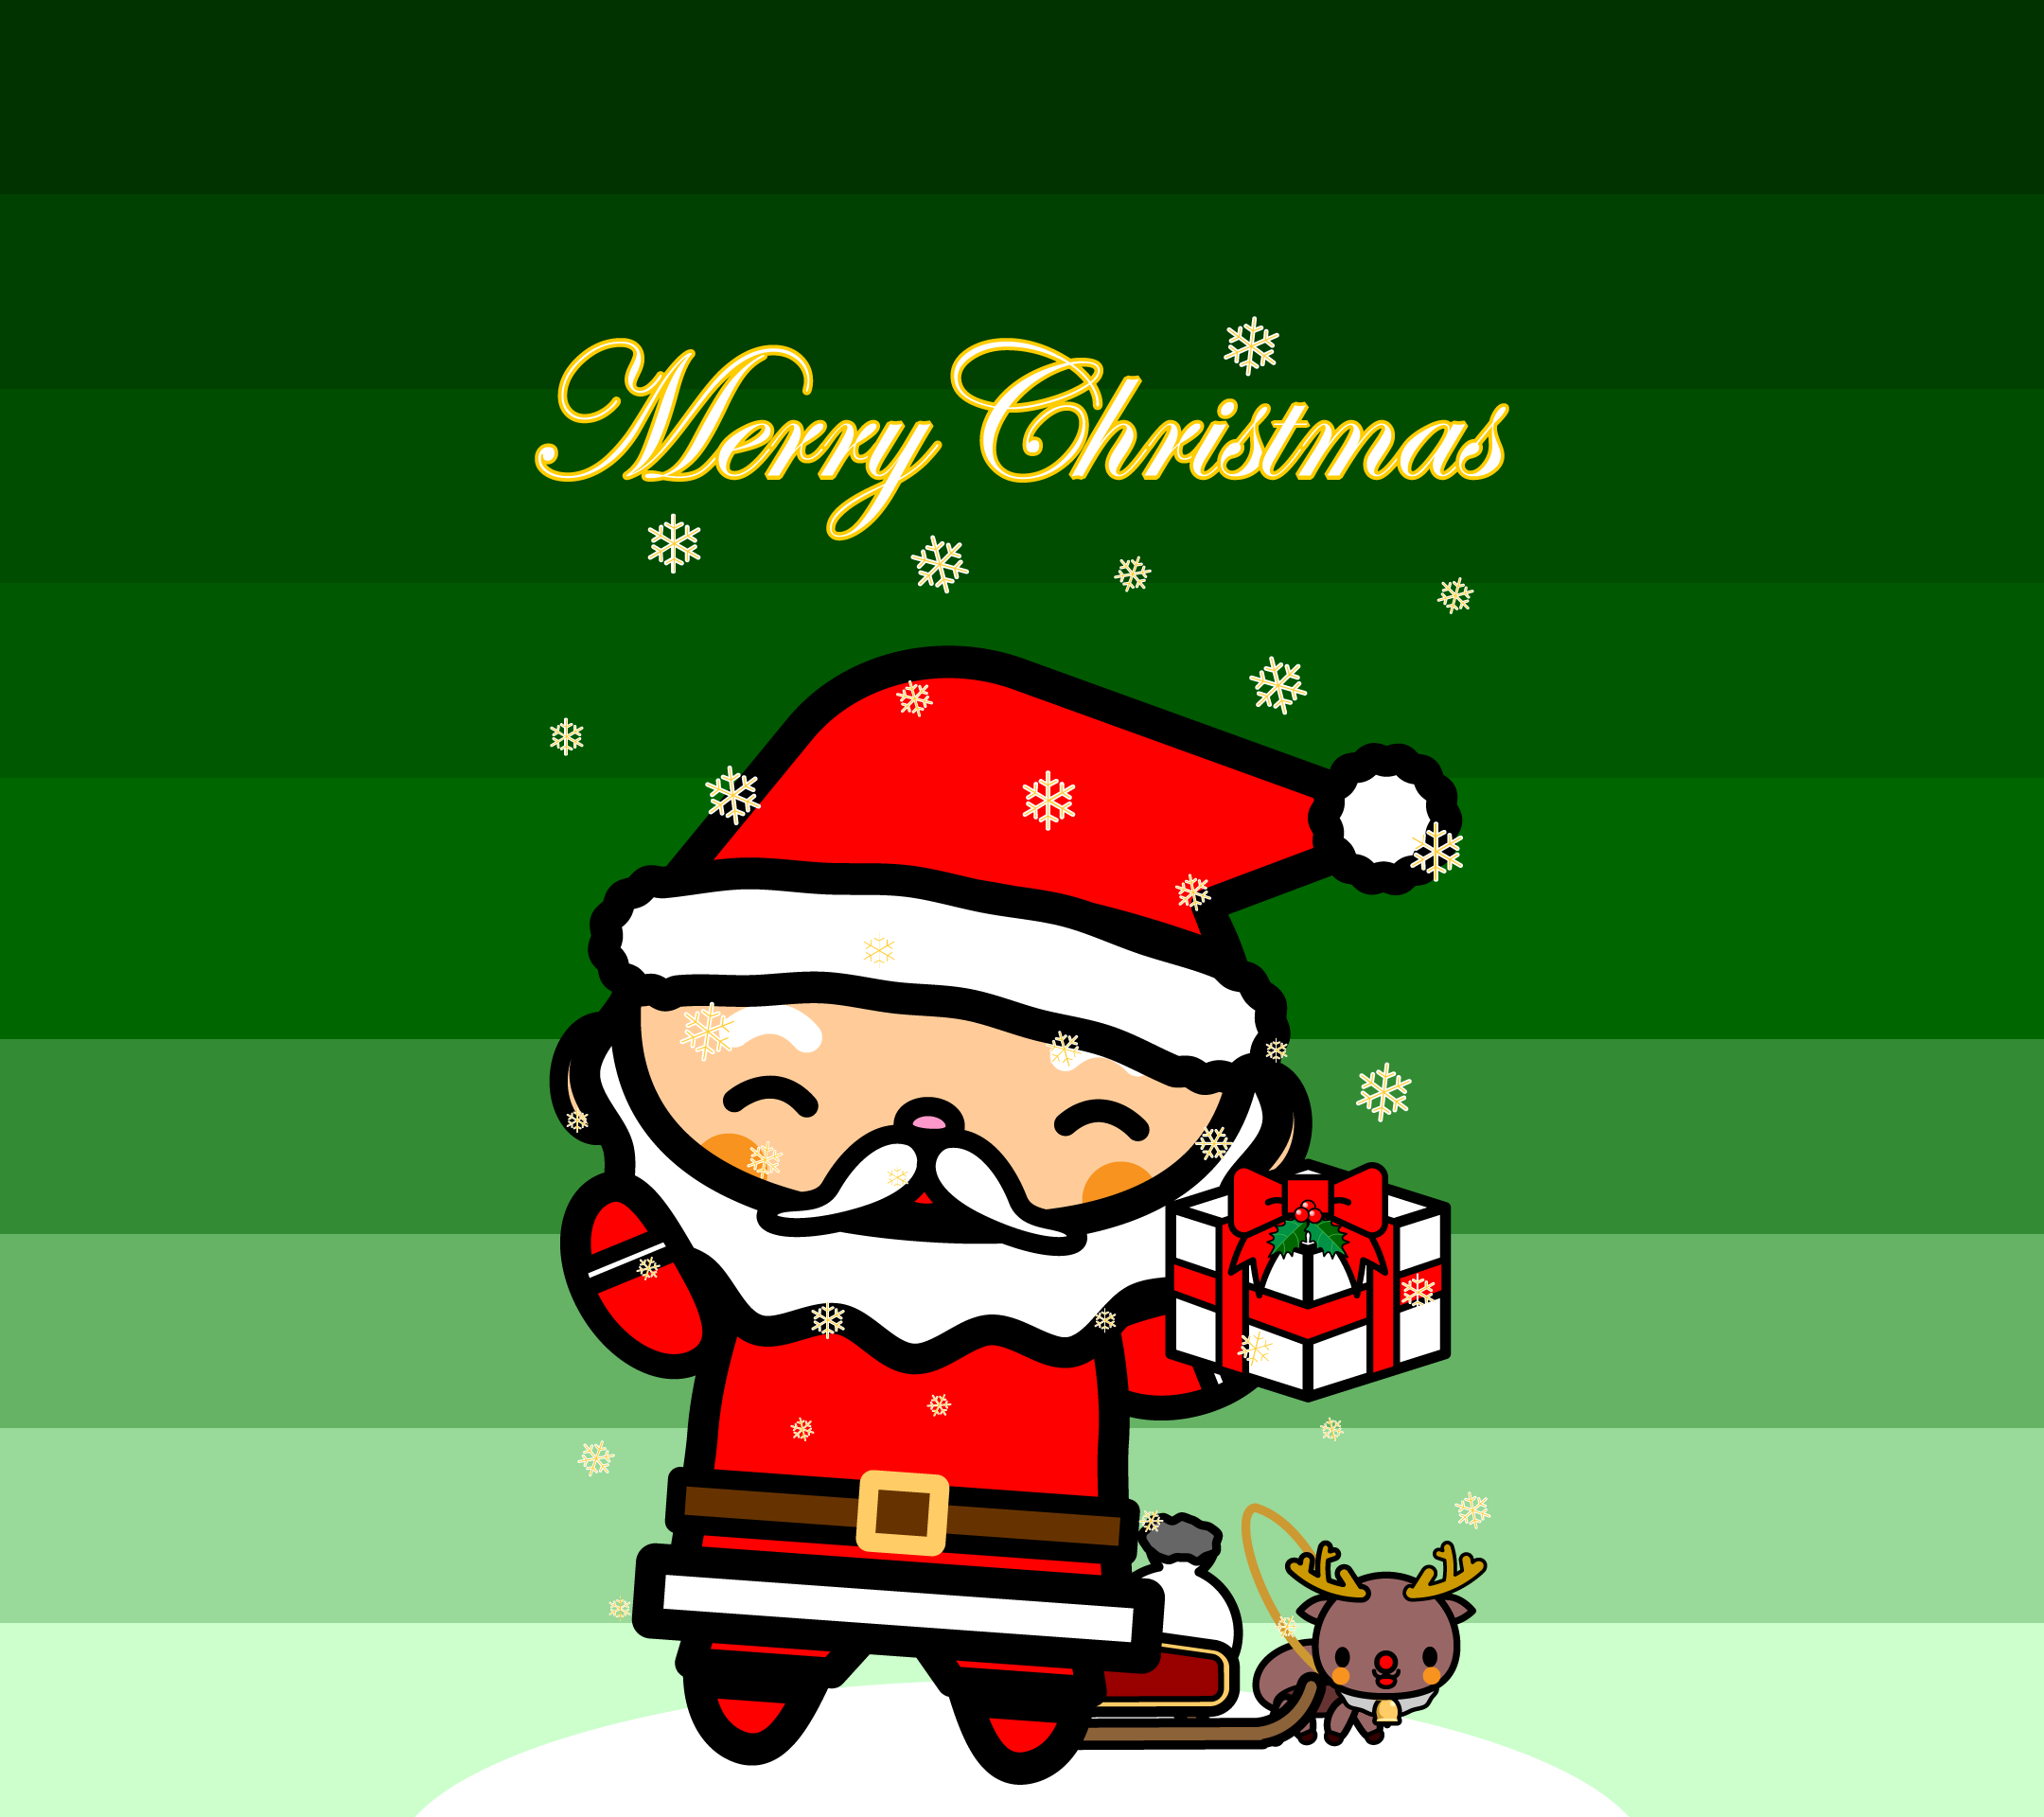 wallpaper6_christmas-santa-green-android